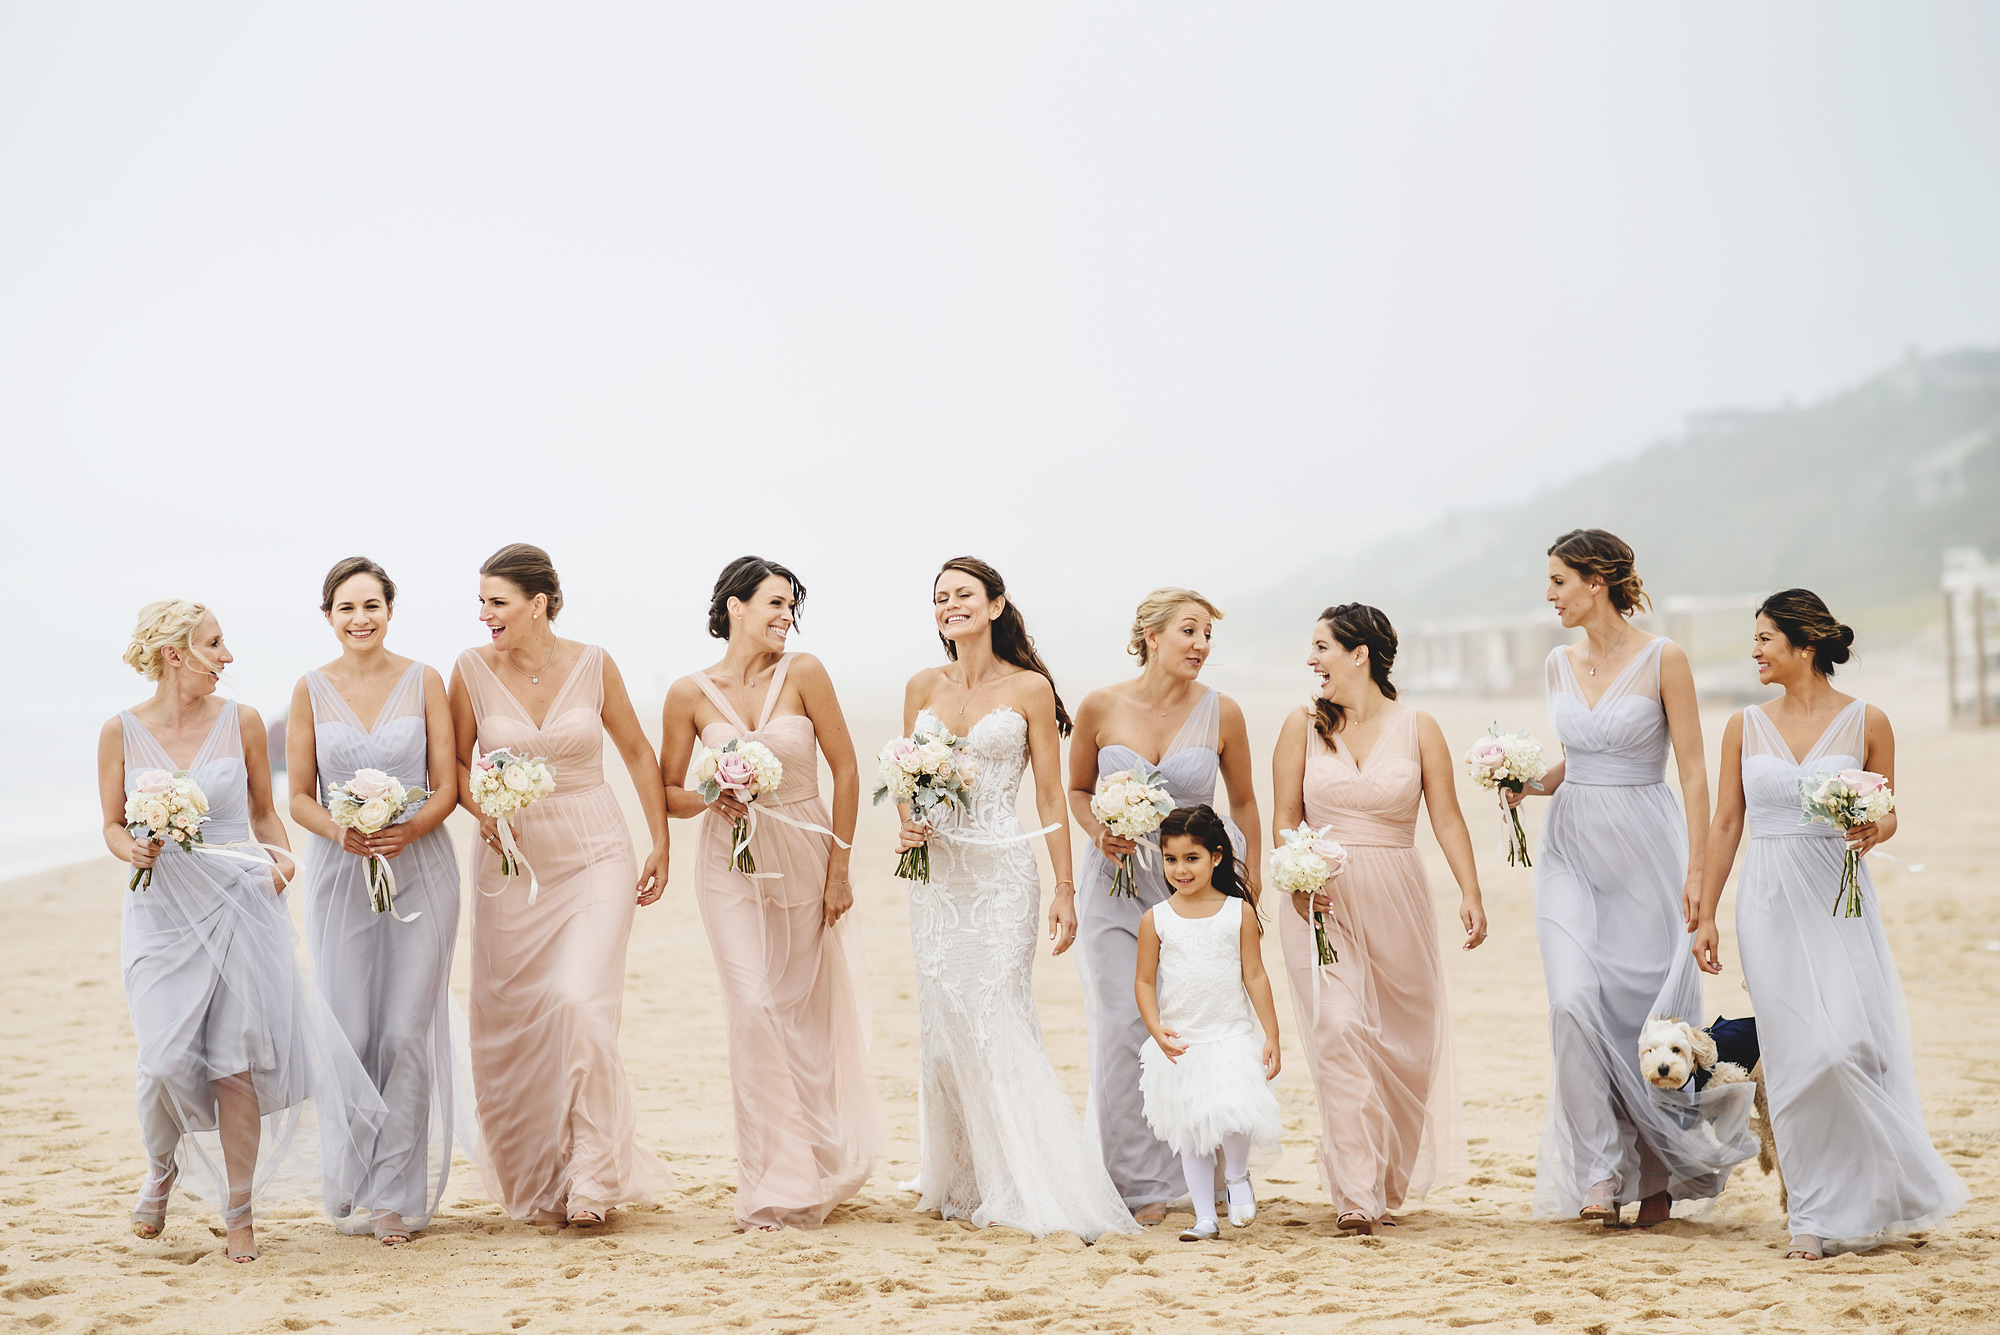 Fashionable bridesmaids on beach  photo by Ross Harvey